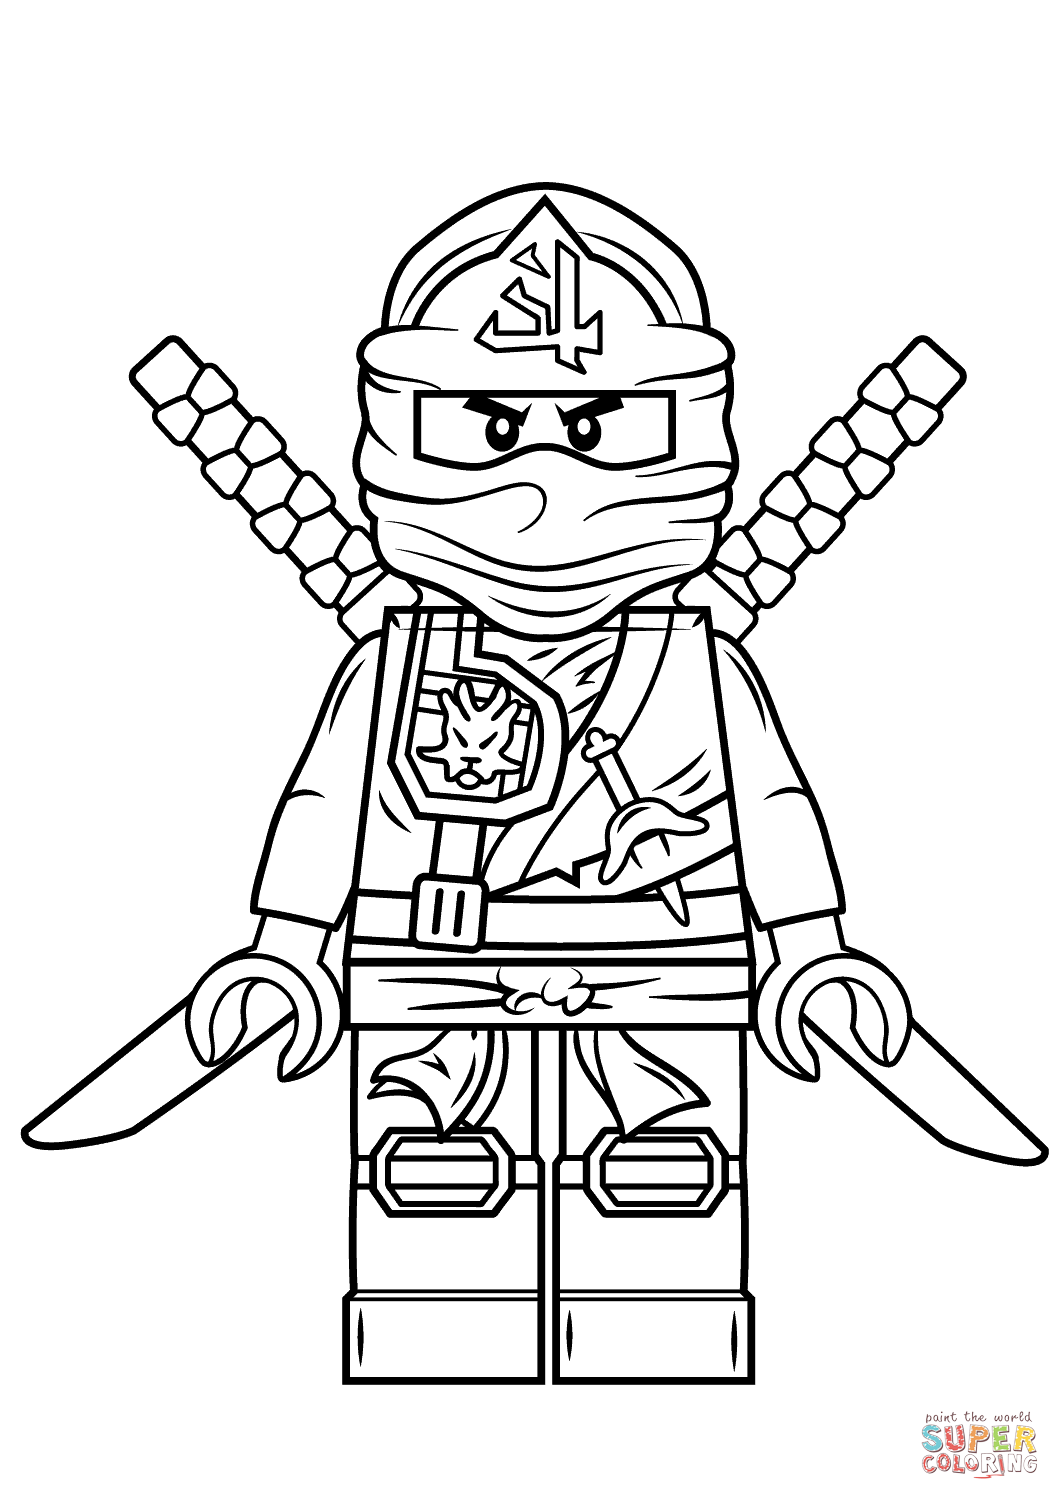 Lego Ninjago Green Ninja | Super Coloring | Kids stuff | Pinterest ...